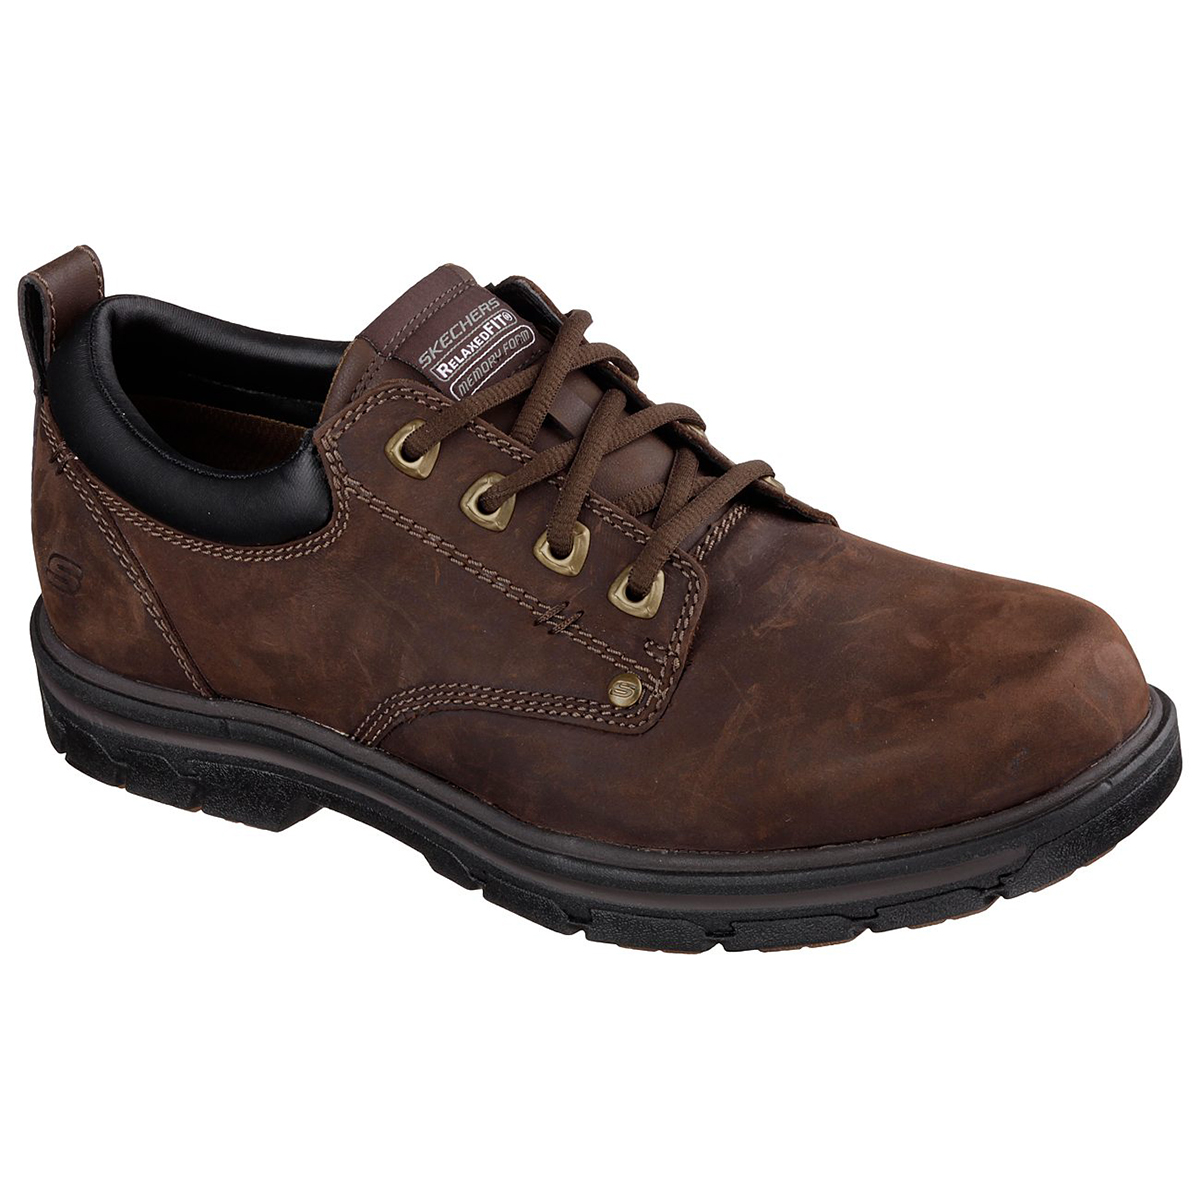 Skechers Men's Rilar Casual Lace-Up Shoes, Wide - Brown, 8